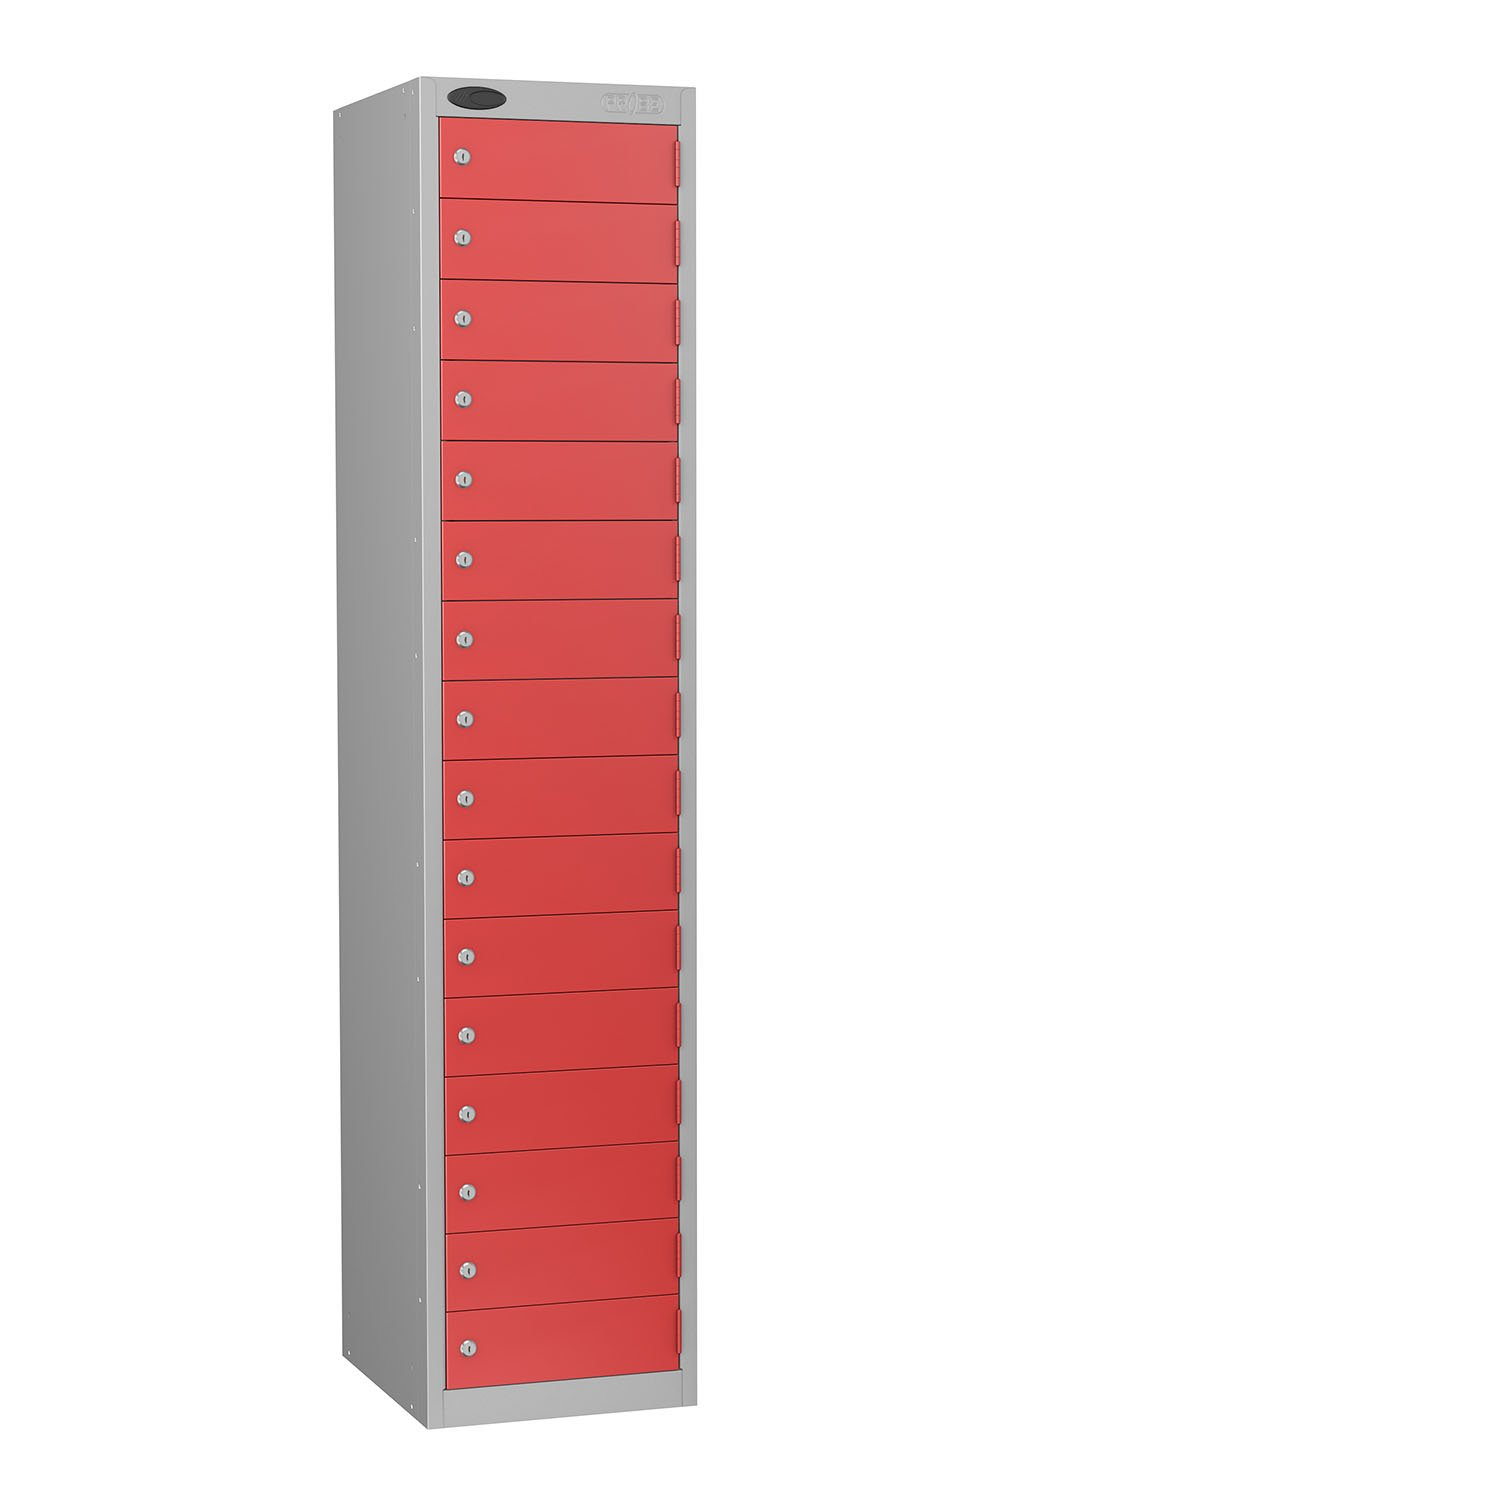 Probe 16 doors small compartments lockers in red colour